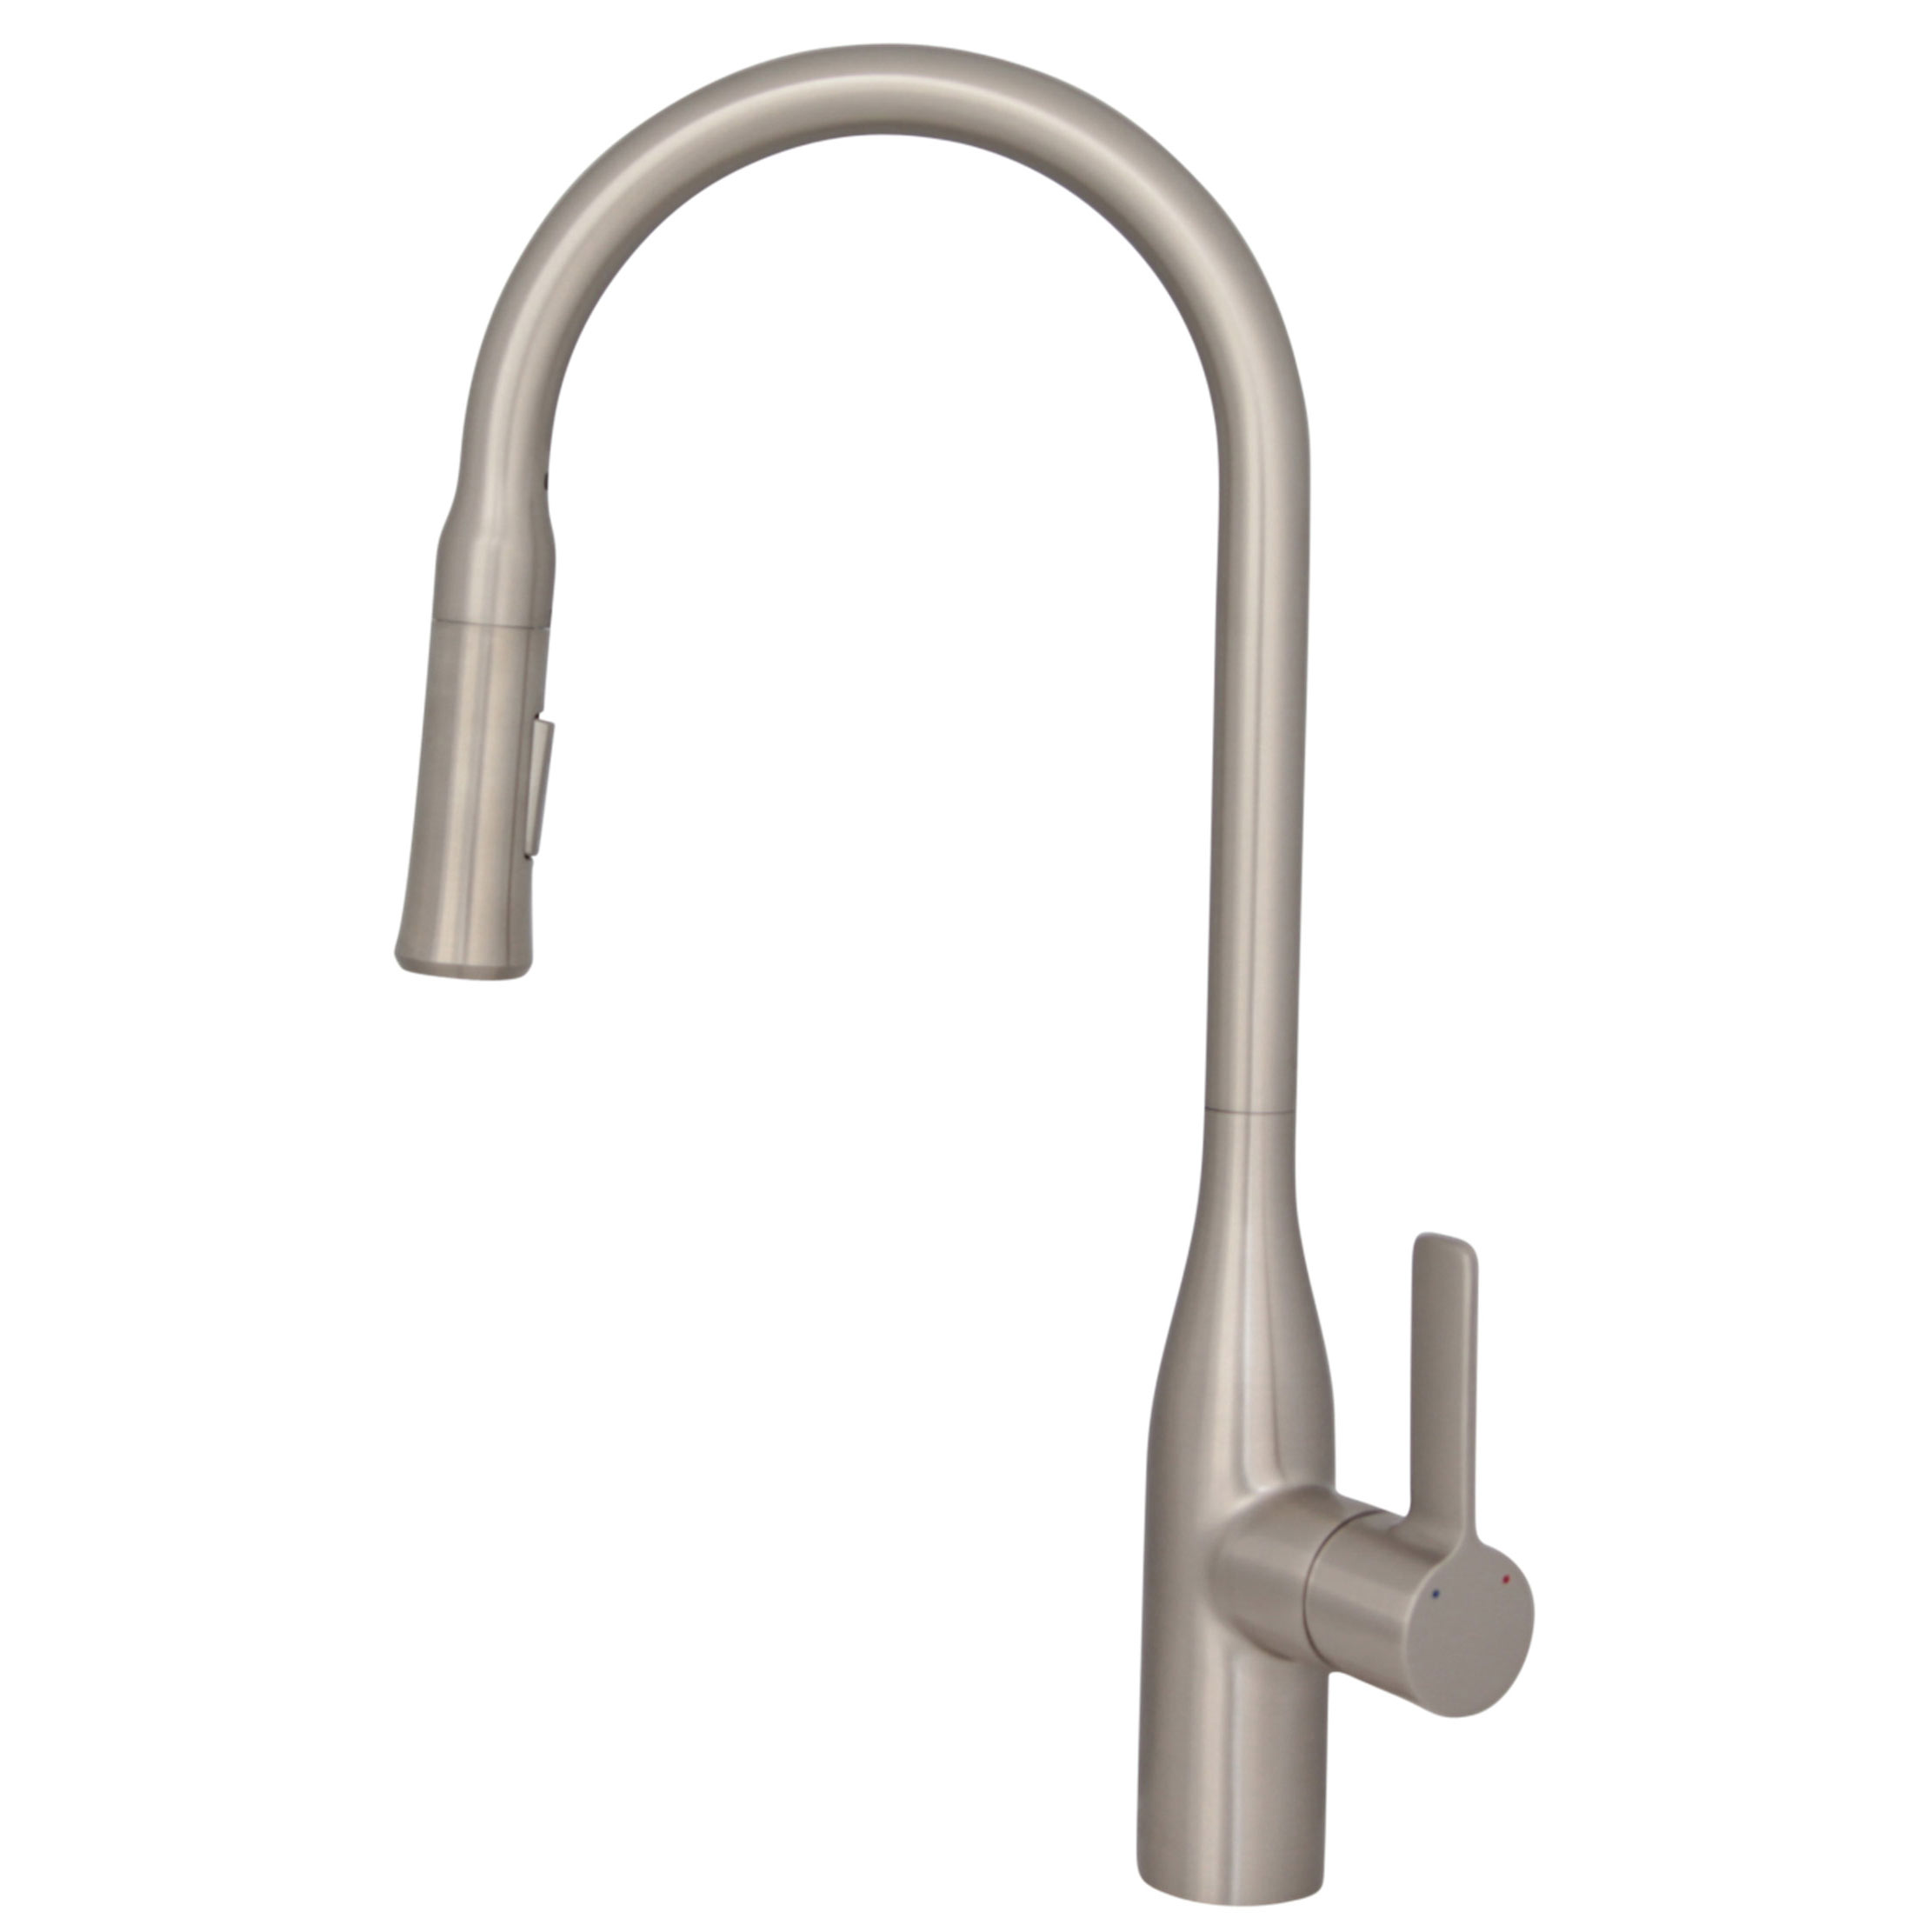 Stylish - K-133B  - Pull Down Single Handle Kitchen Faucet - Brushed Nickel